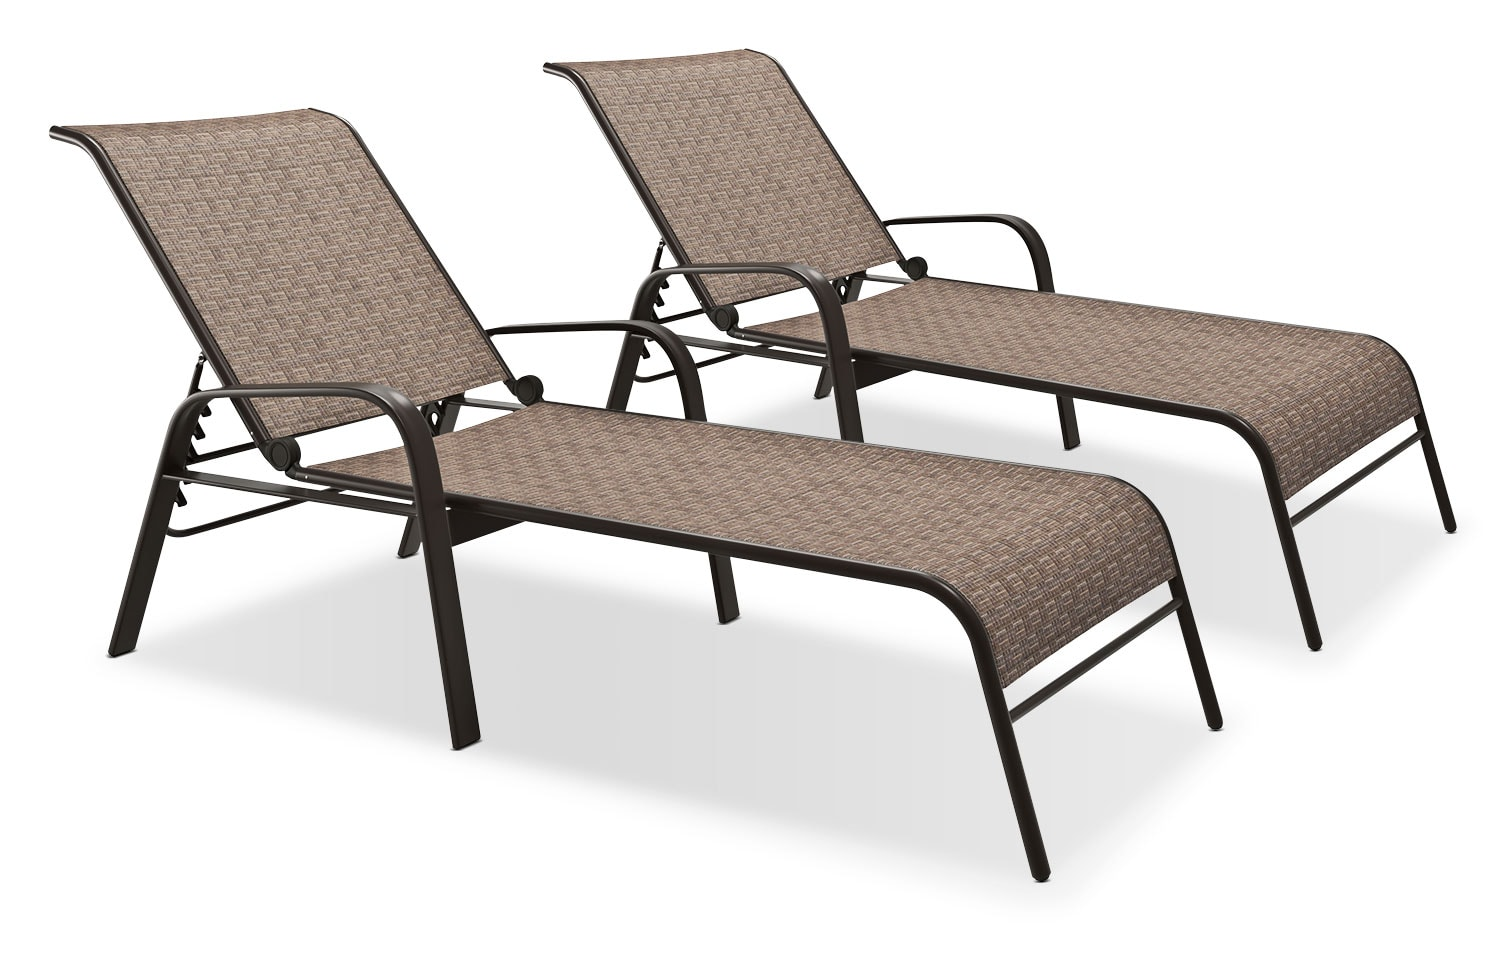 Reclining Loungers, Set of 2 – Brown